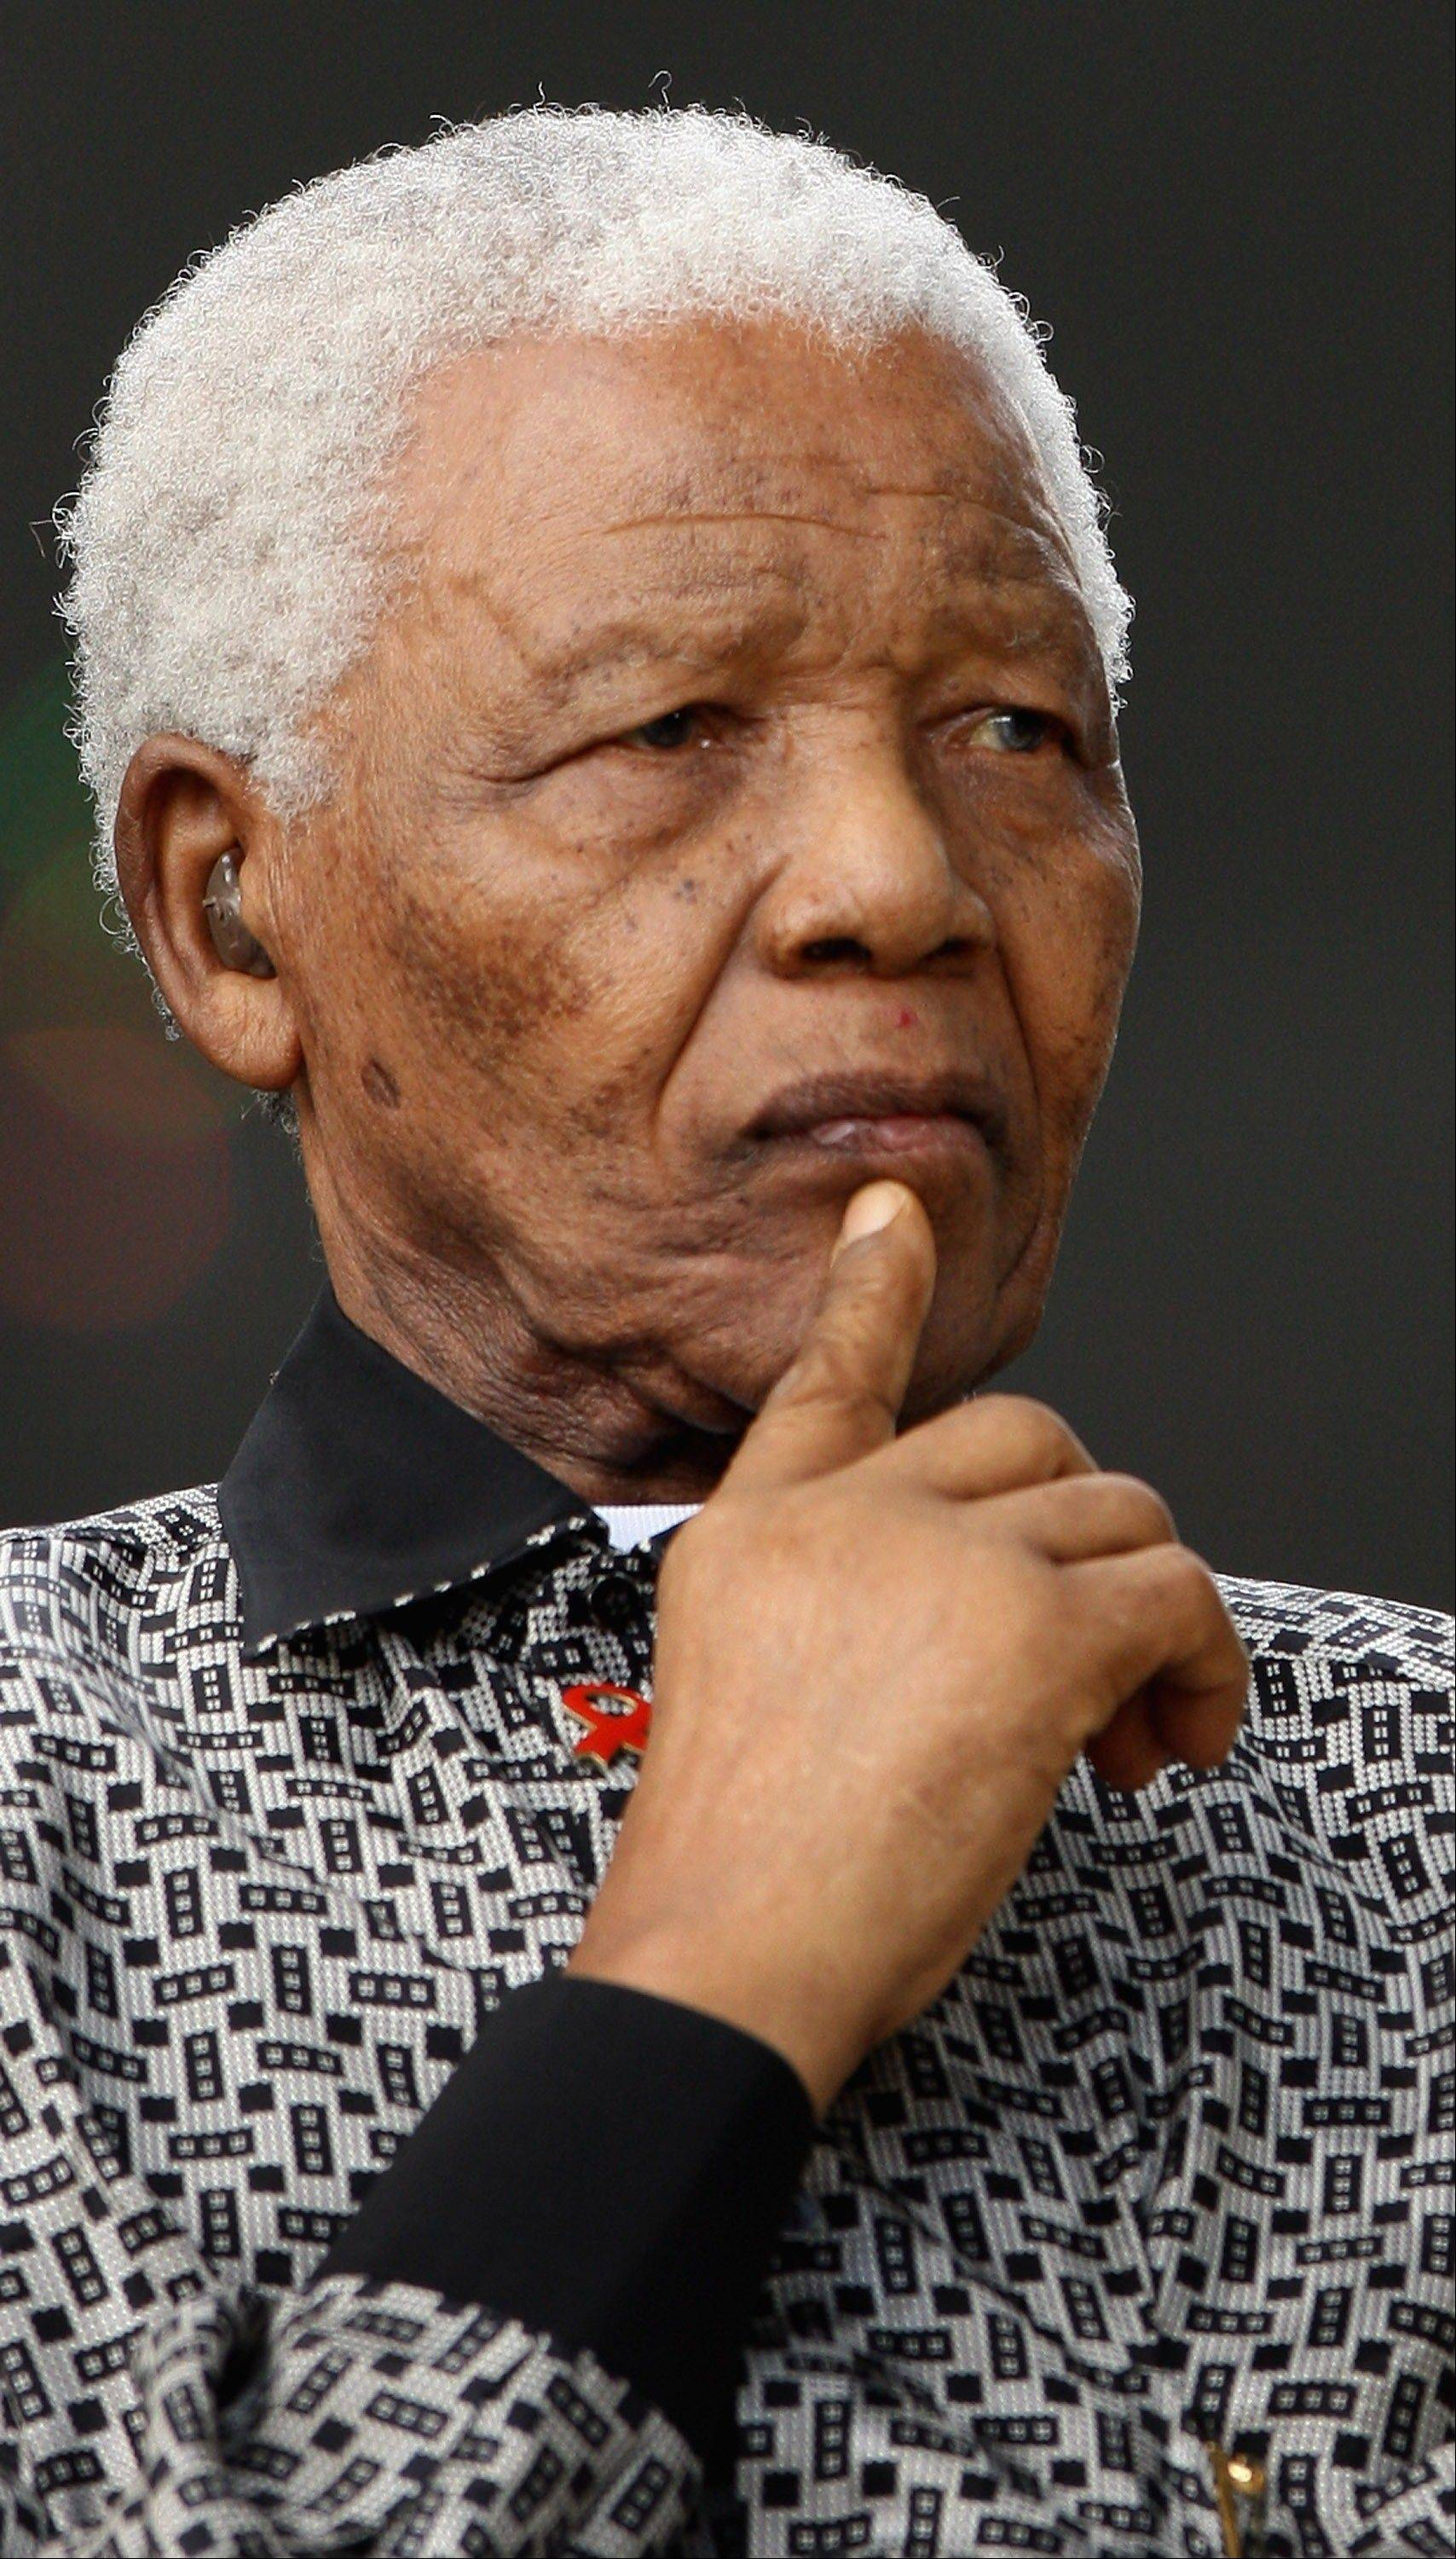 Former South African President Nelson Mandela pauses during a statue unveiling ceremony in his honor at Parliament Square in London.